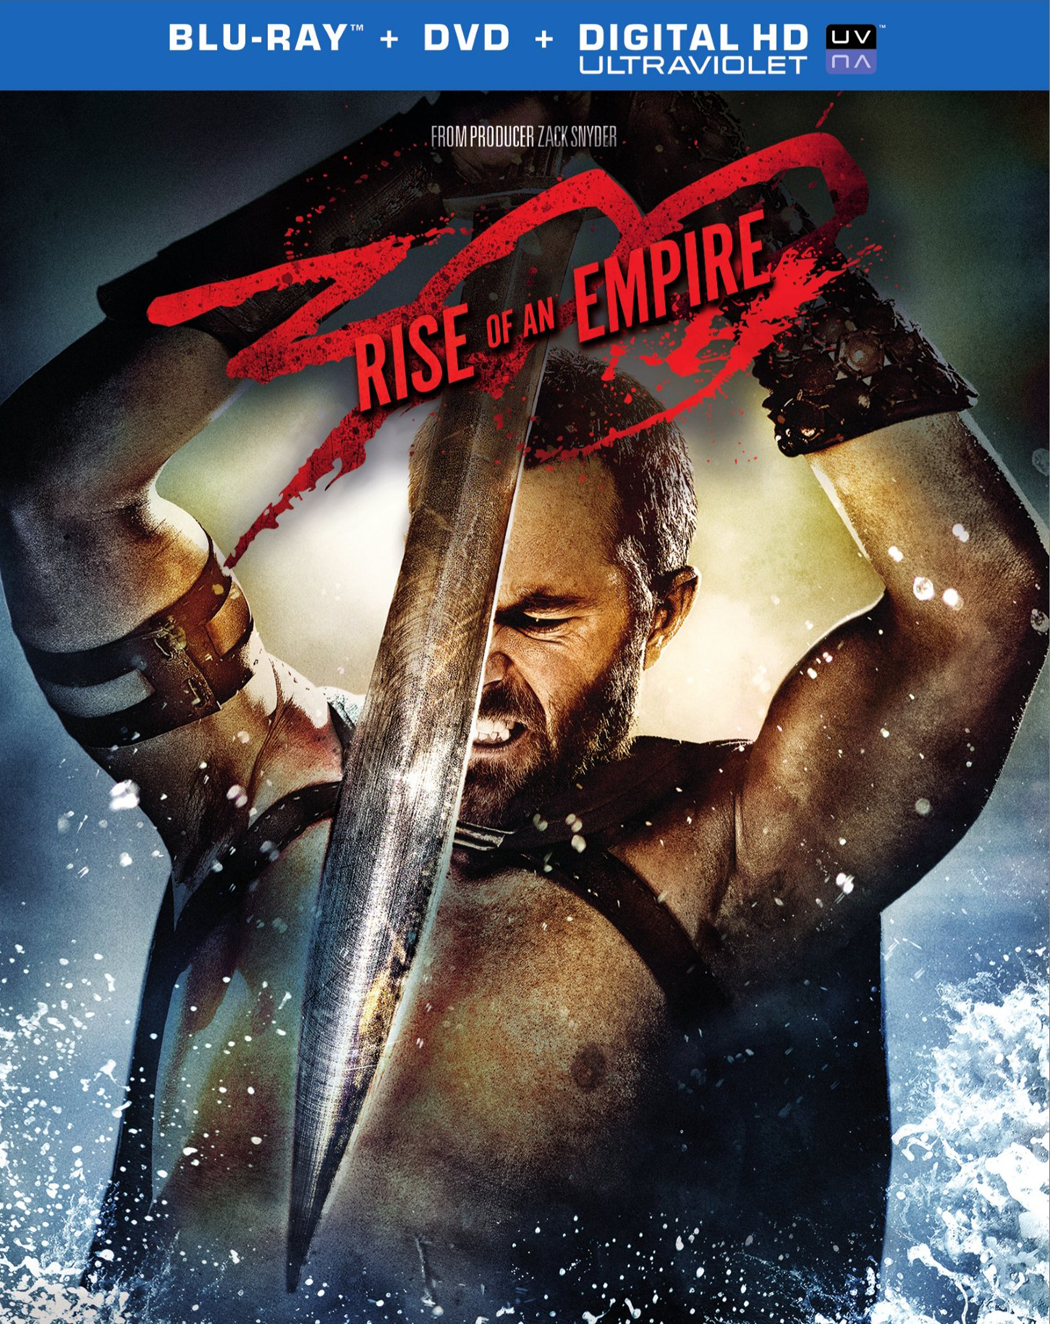 300 RISE OF AN EMPIRE BD + DVD